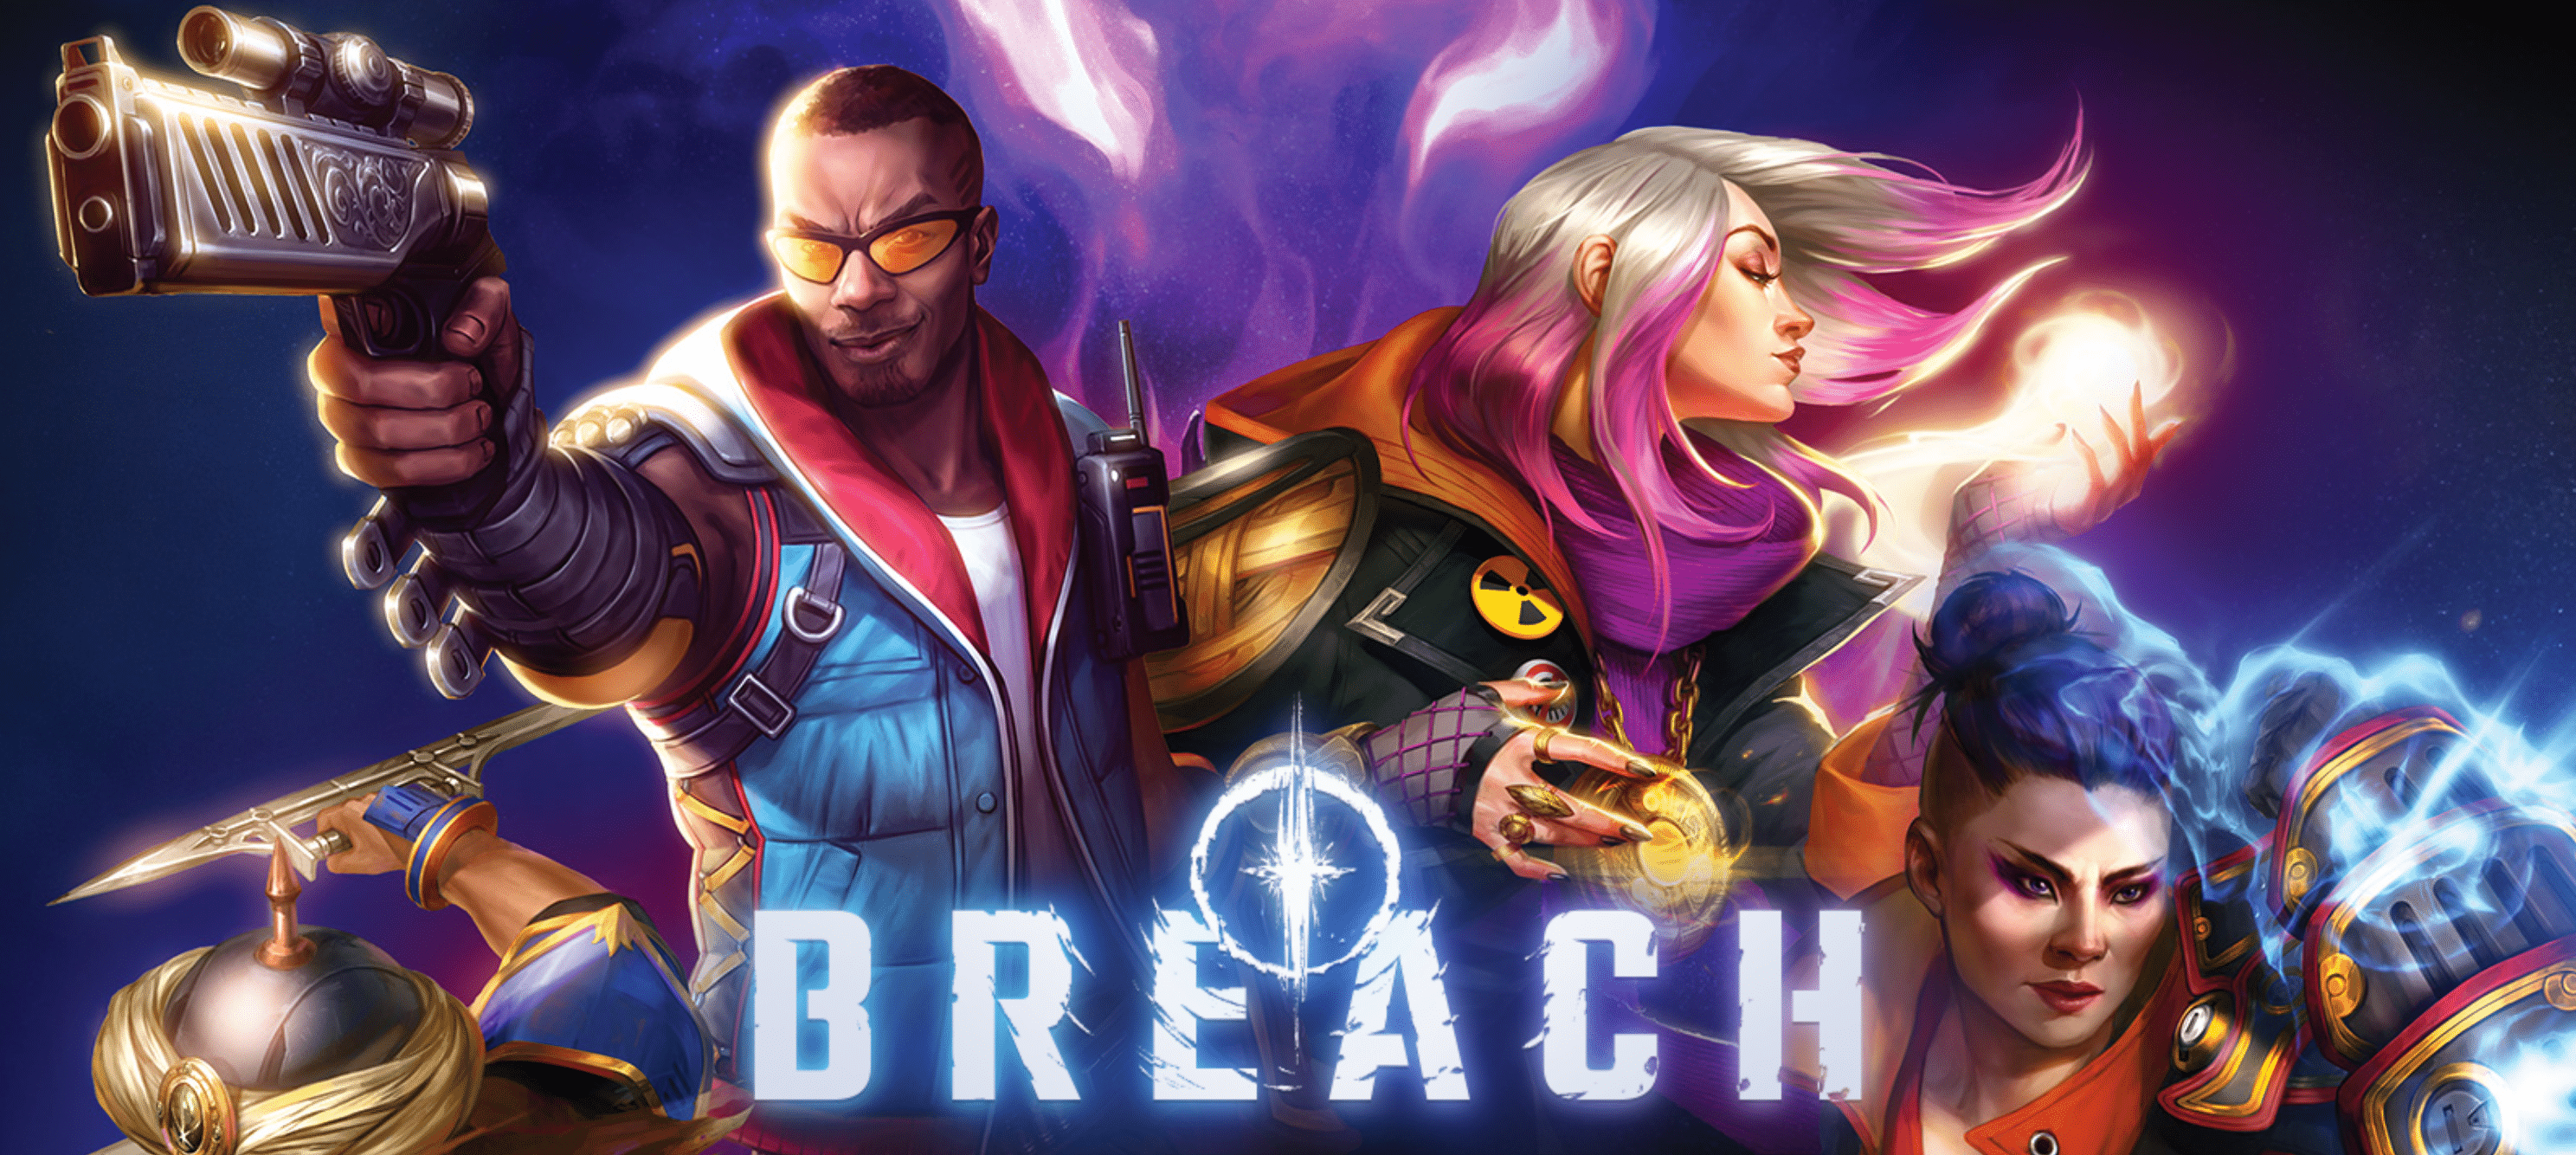 Breach Preview Grettogeek